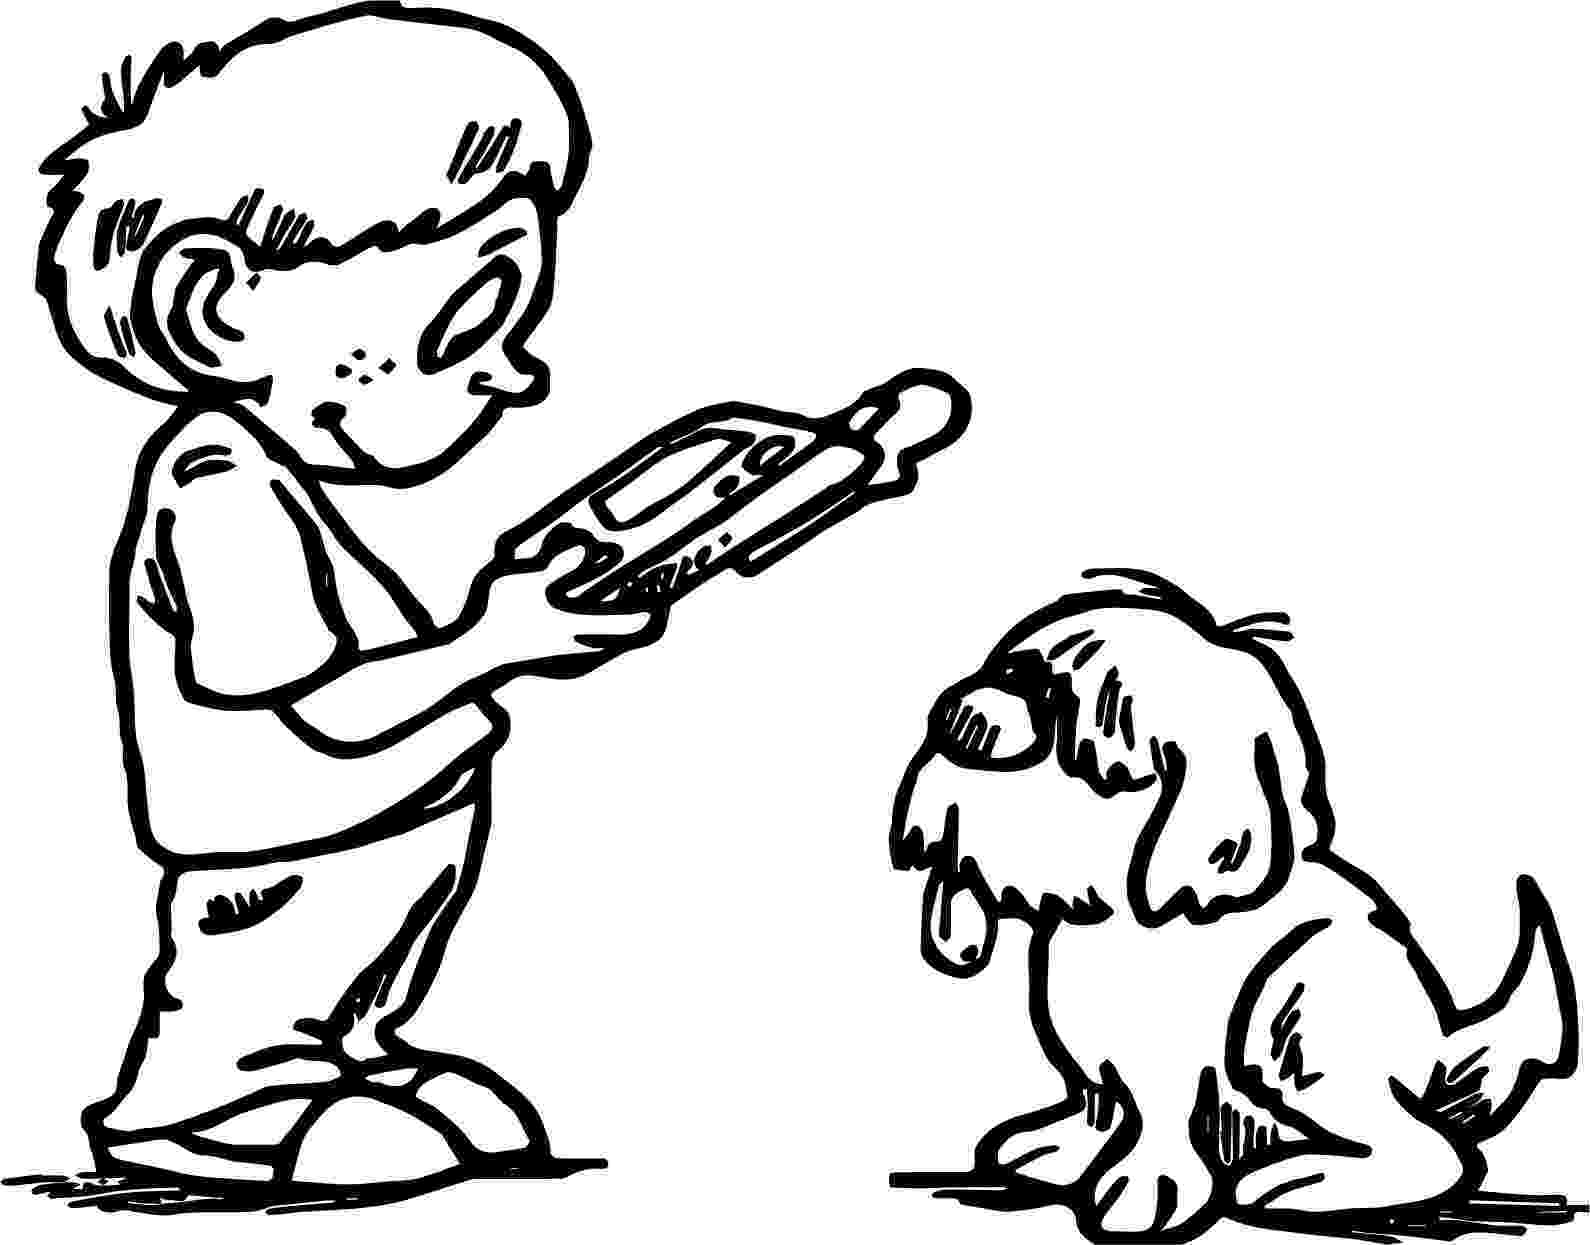 coloring games for boys boy playing computer games with dog coloring page games boys coloring for